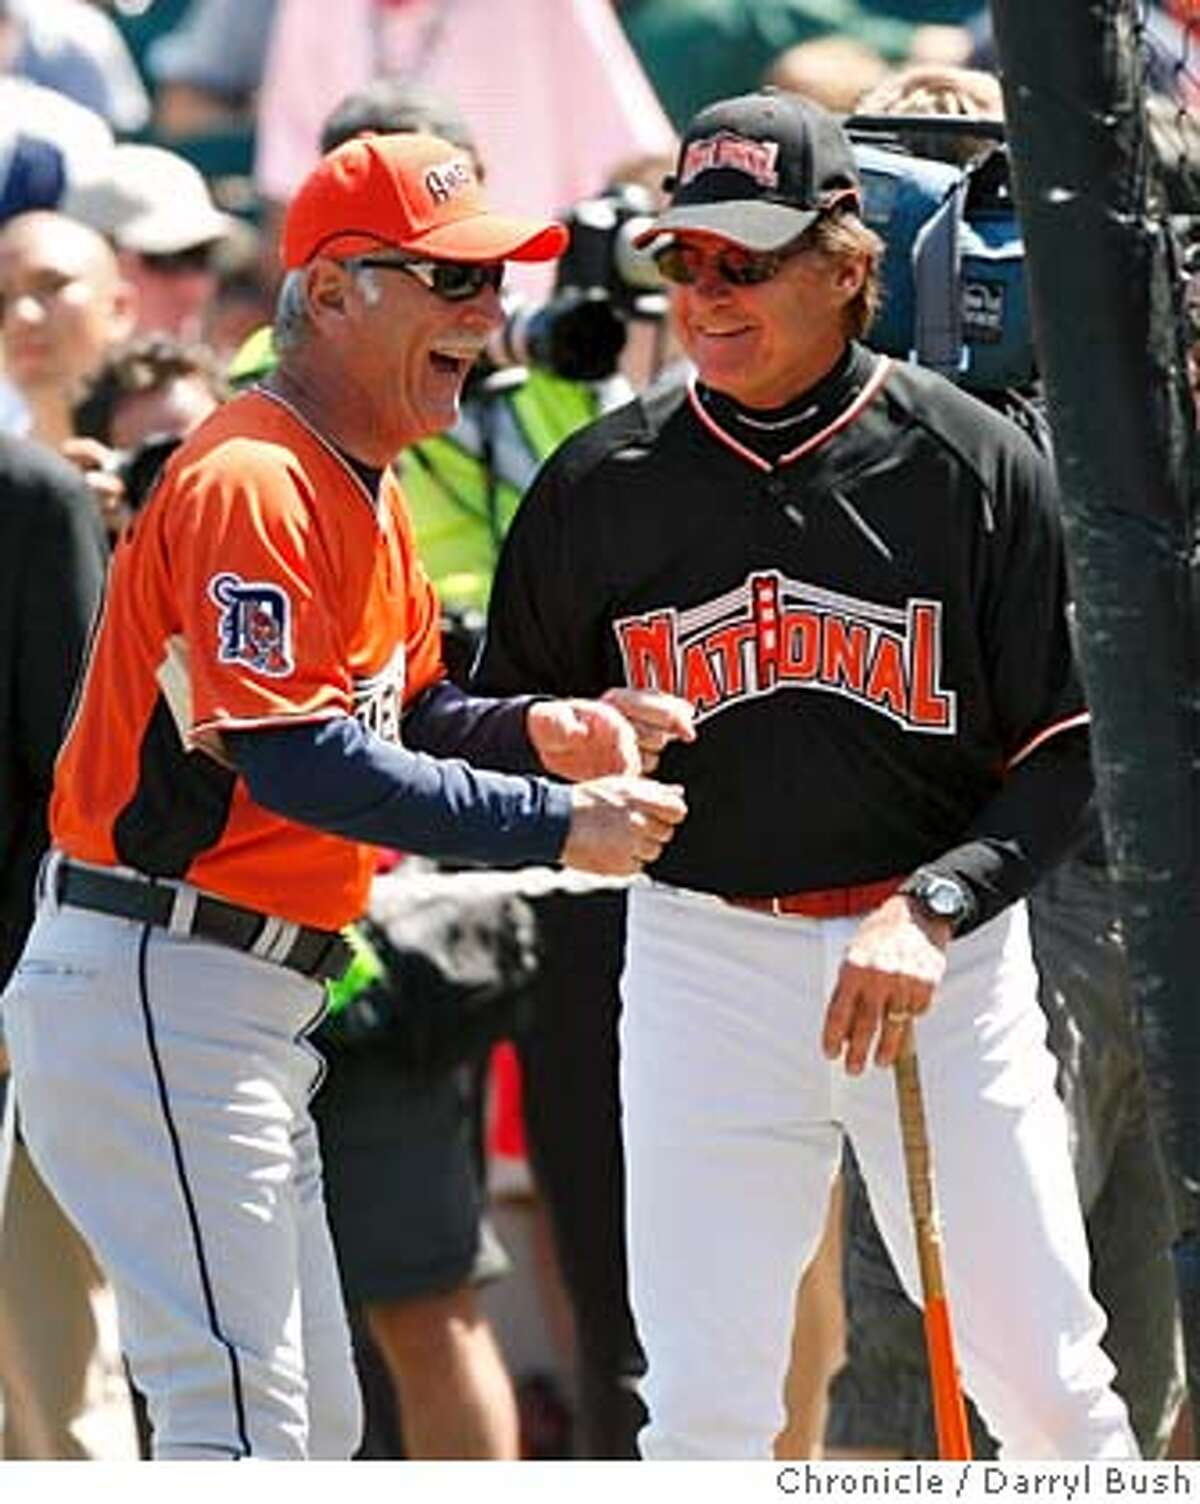 allstar_homerun_0006_db.JPG American League manager Jim Leyland and National League manager Tony La Russa chat during National League Team's batting practice in preparation for Tuesday's All-Star Game, before the Home Run Derby at AT&T Park in San Francisco, CA, on Monday, July, 9, 2007. photo taken: 7/9/07 Darryl Bush / The Chronicle ** (cq) MANDATORY CREDIT FOR PHOTOG AND SF CHRONICLE/NO SALES-MAGS OUT